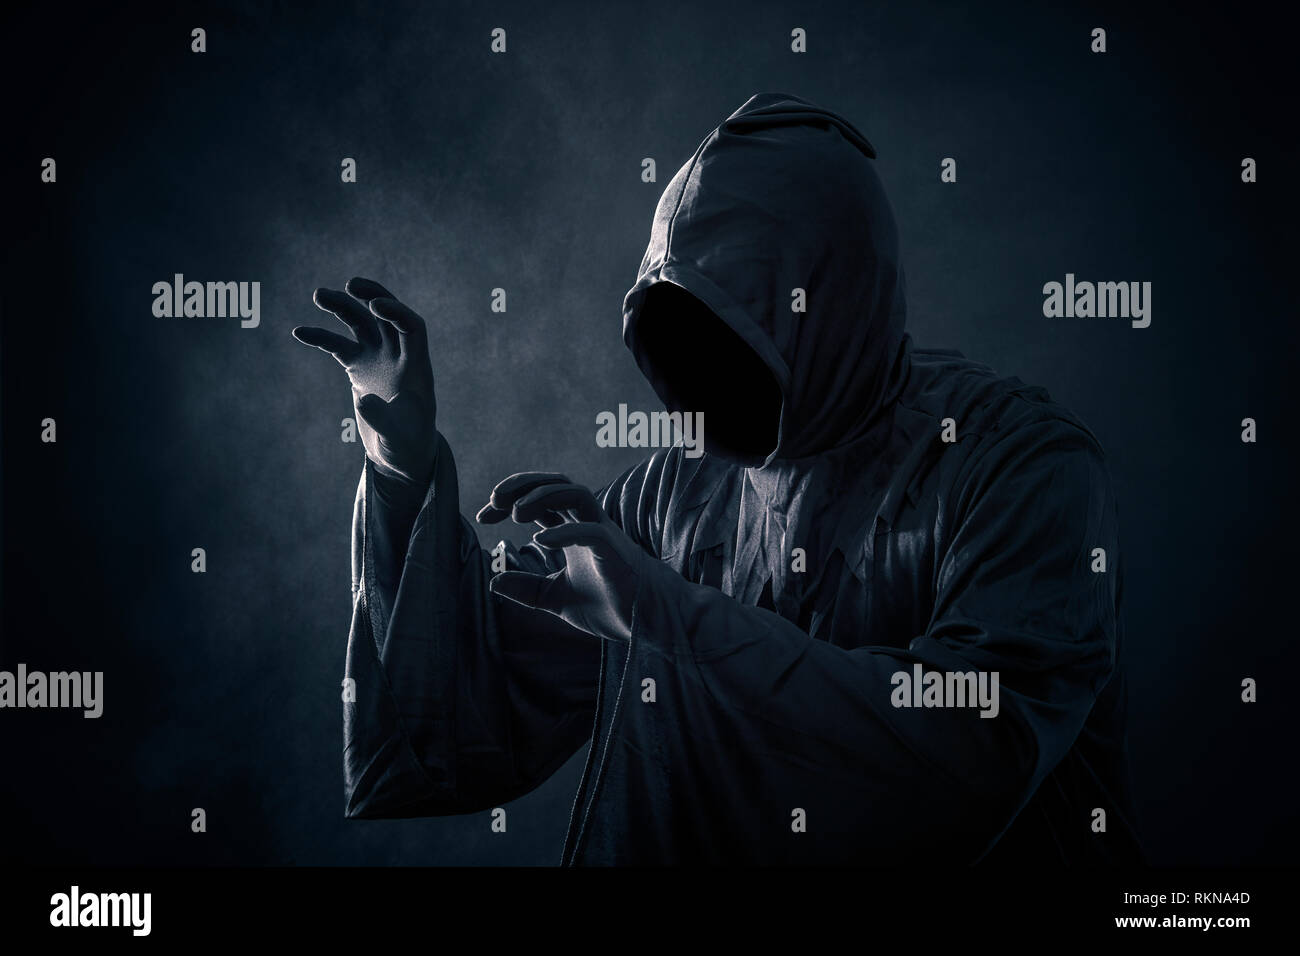 Scary figure in hooded cloak - Stock Image